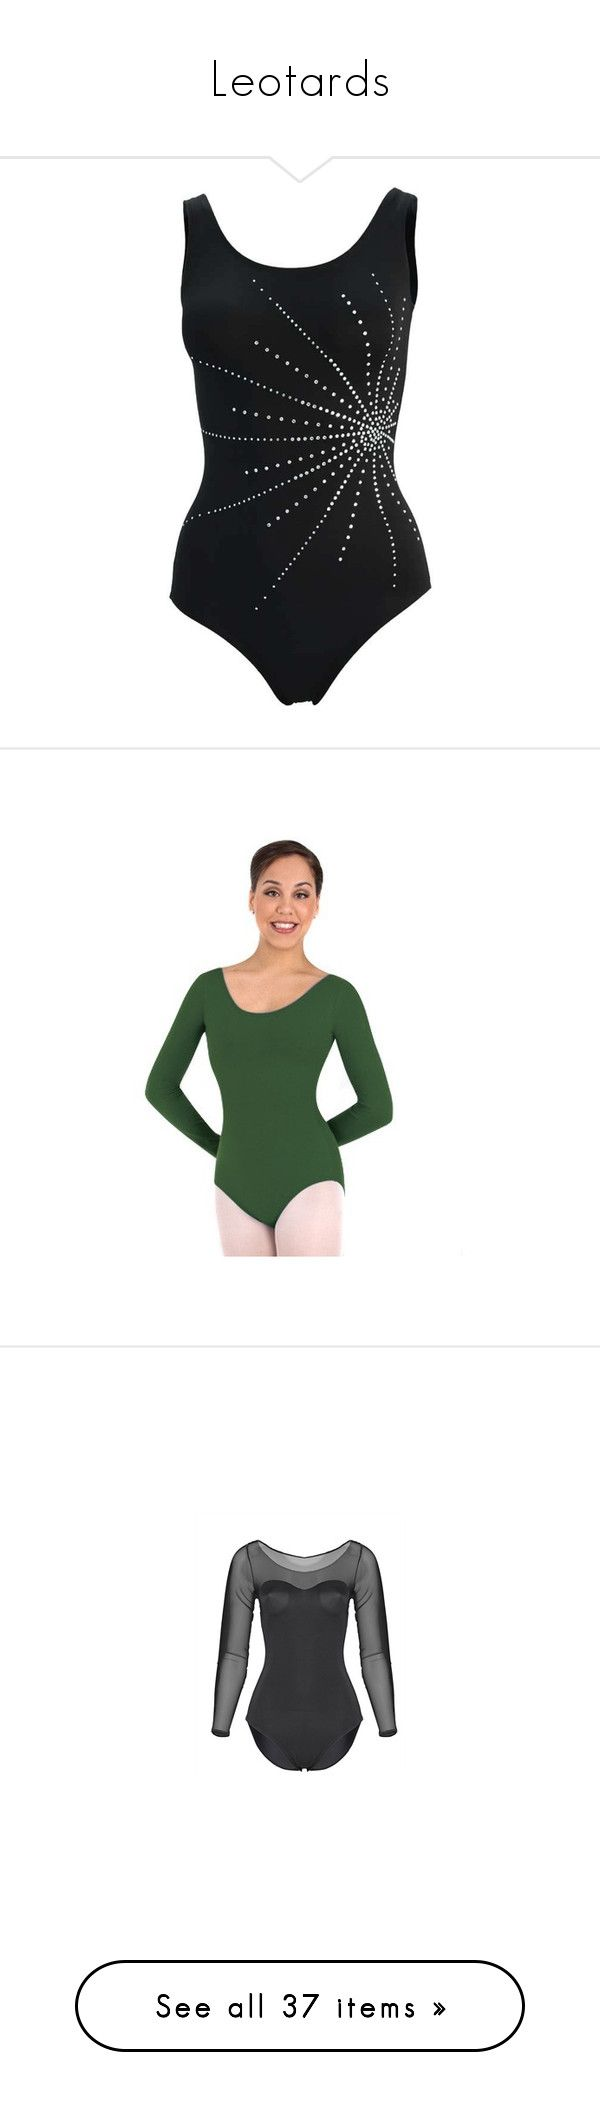 """Leotards"" by katerina-dobrowa ❤ liked on Polyvore featuring sport, tops, dance, leotards, ballet, bodies, dance clothes, home, home decor and dancer"